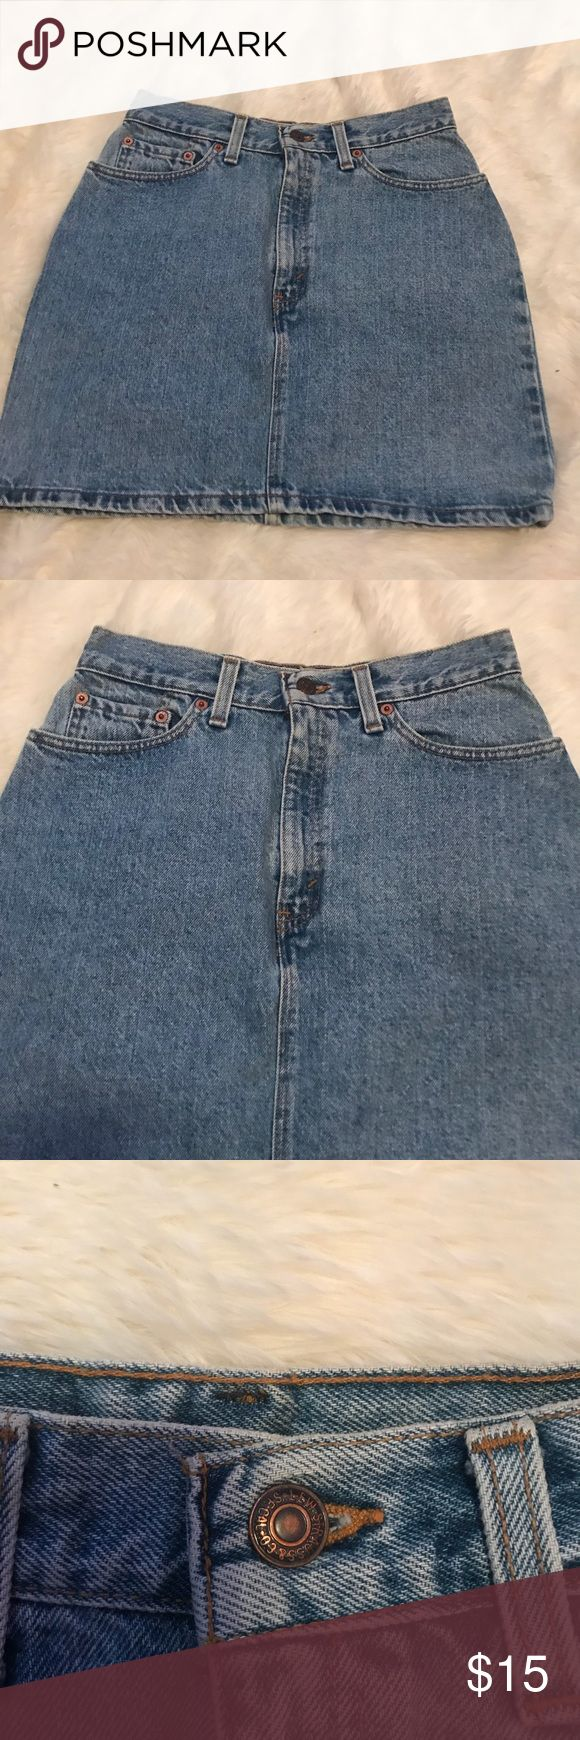 Levi's highwaisted denim skirt size 9 Denim high waisted skirt size 9 W. In great condition , only missing the Levi's logo on the back as shown in picture . Since it's missing the back , that's why the price is set at . Super cute and very stylish for this up coming season Levi's Skirts Mini